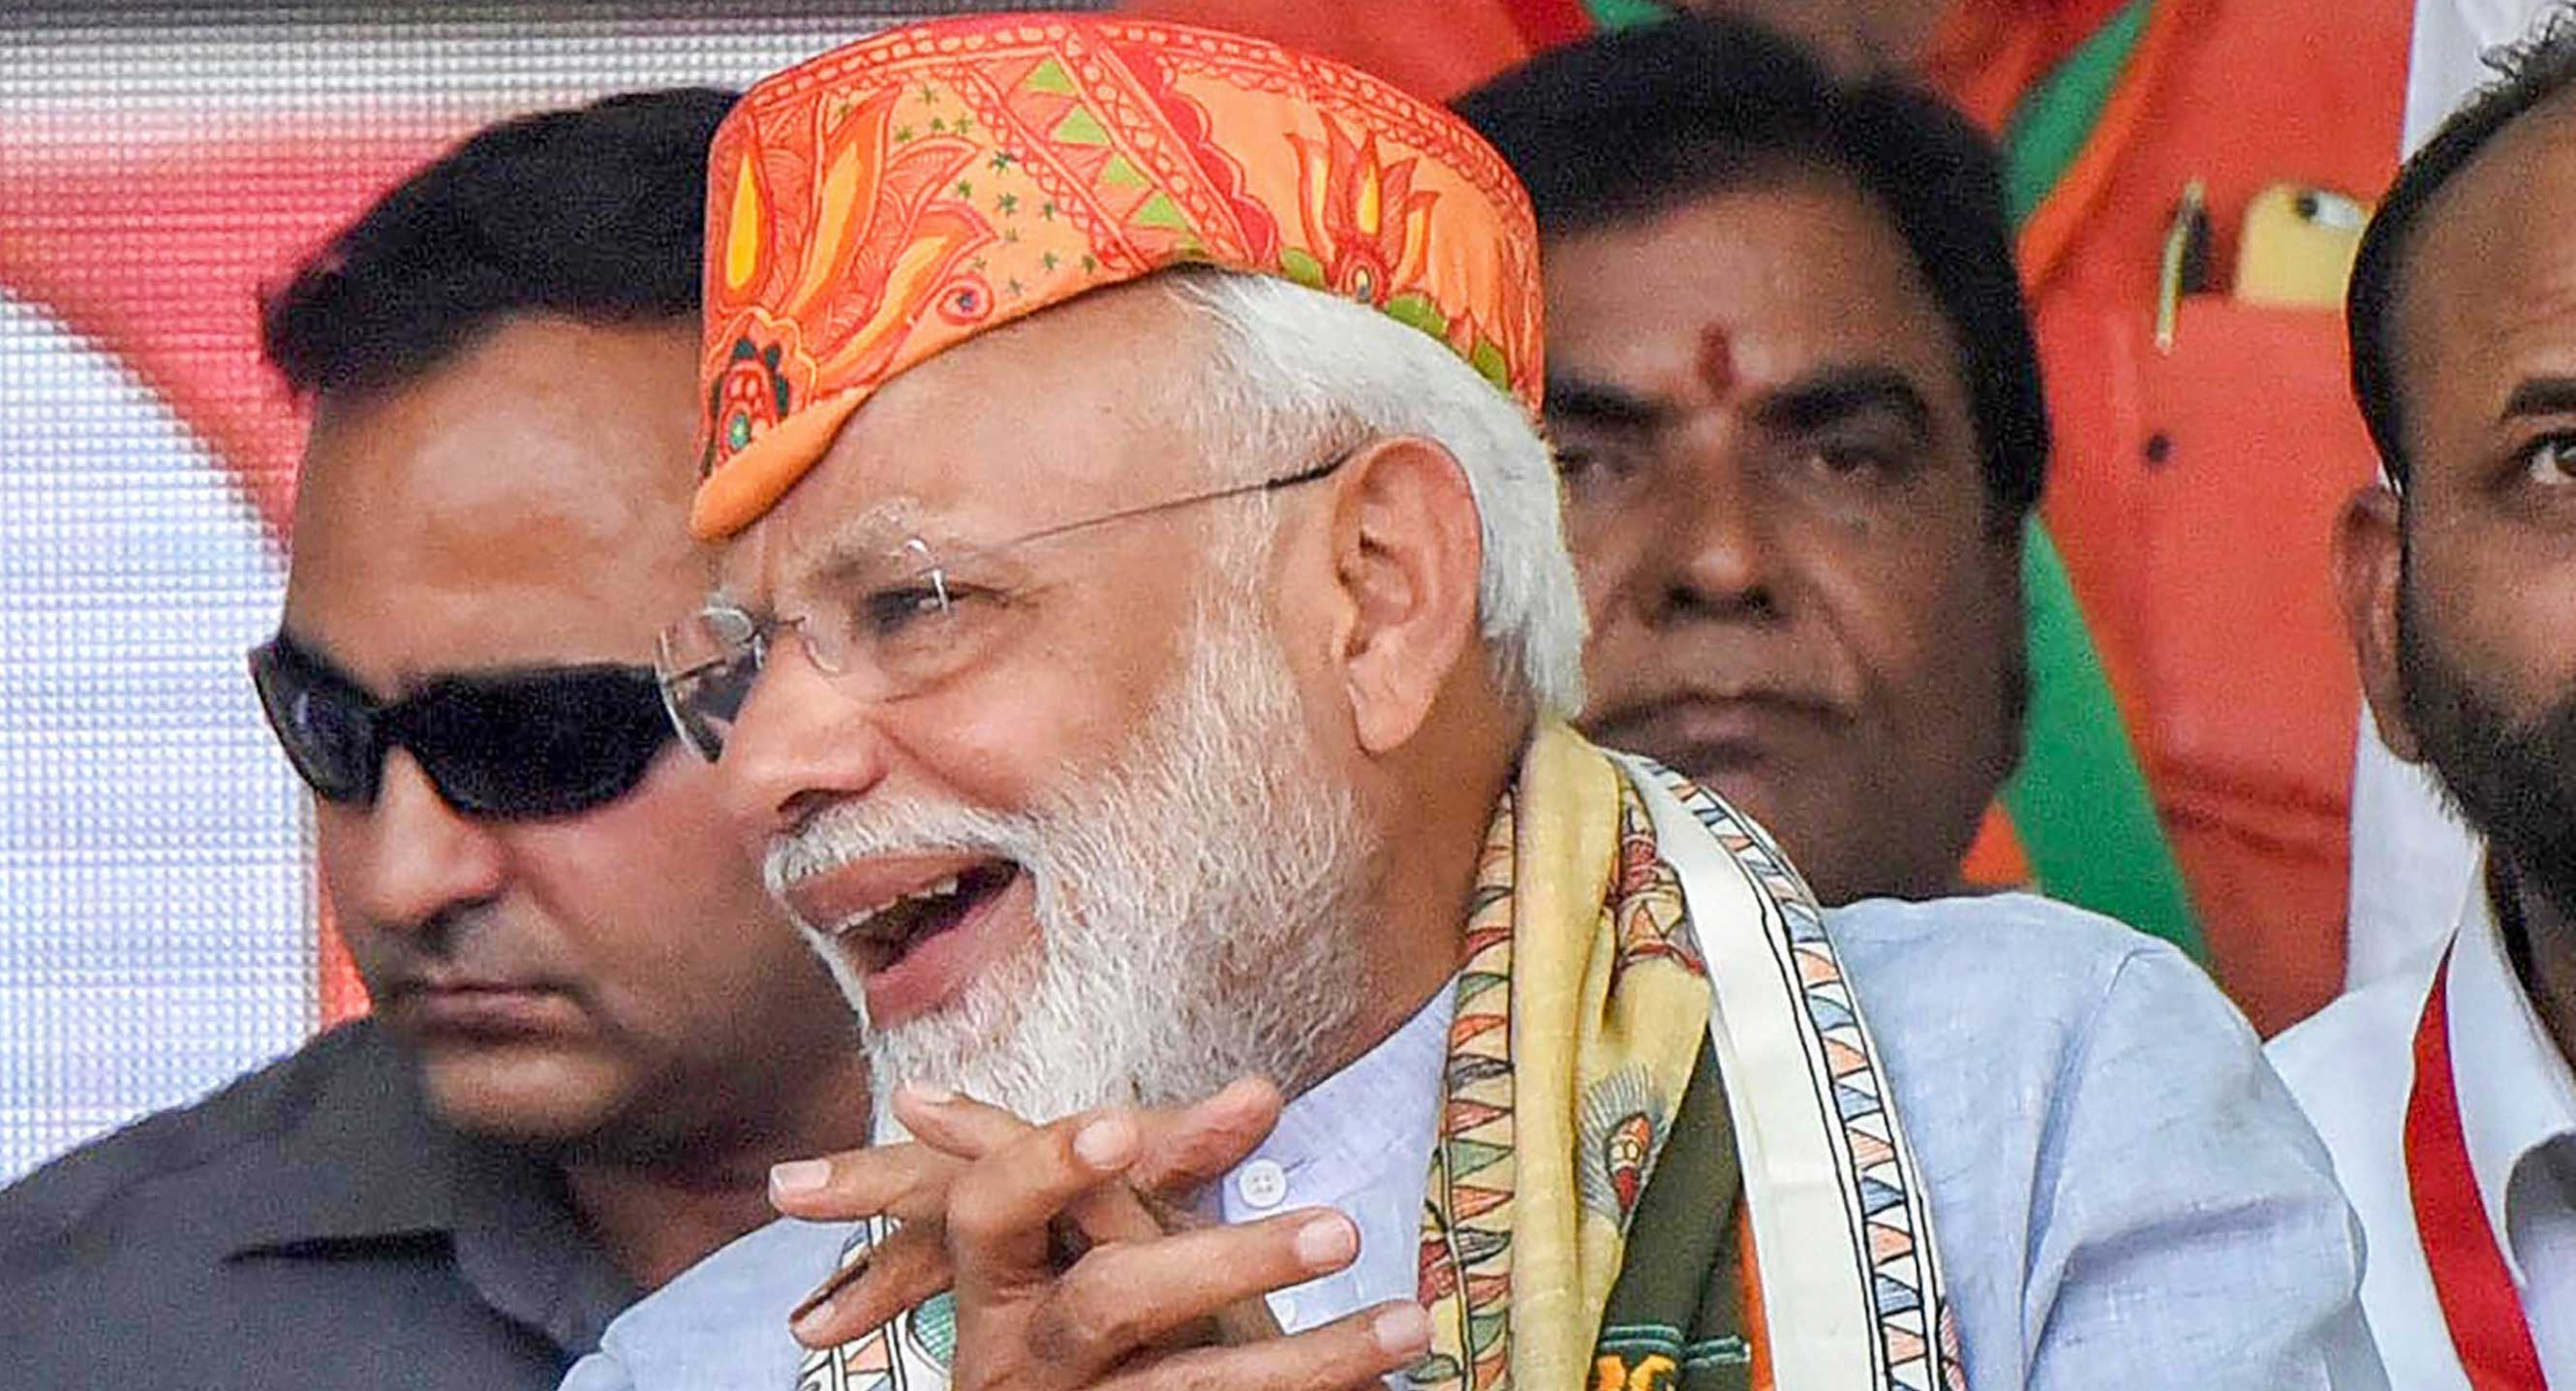 Prime Minister Narendra Modi during an election rally in Darbhanga, on April 25, 2019. He seems intent on conveying the message that resistance to chanting Vande Mataram, or, for that matter, whatever is preached by the BJP, is equivalent to treason